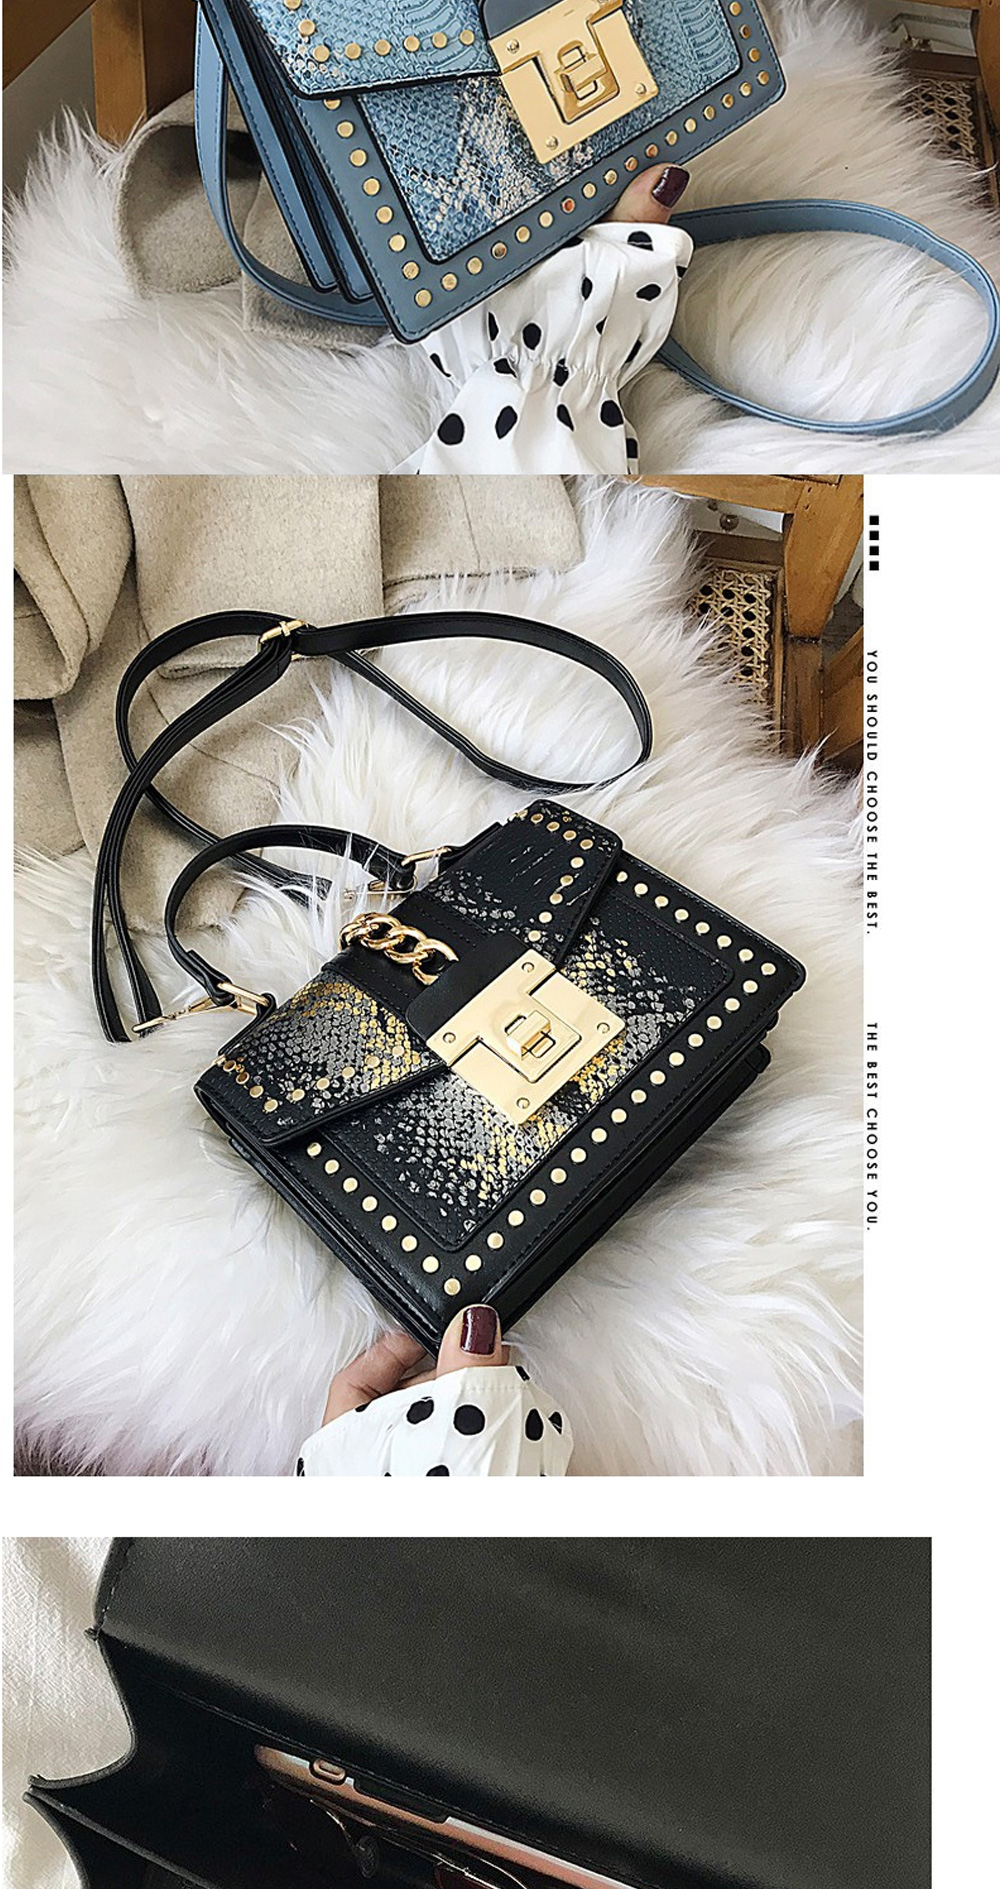 Fashion Snake Pattern Portable Small Female Bag 2020 New European And American Personality Atmospheric Messenger Shoulder Bag Wild Small Square Bag  3